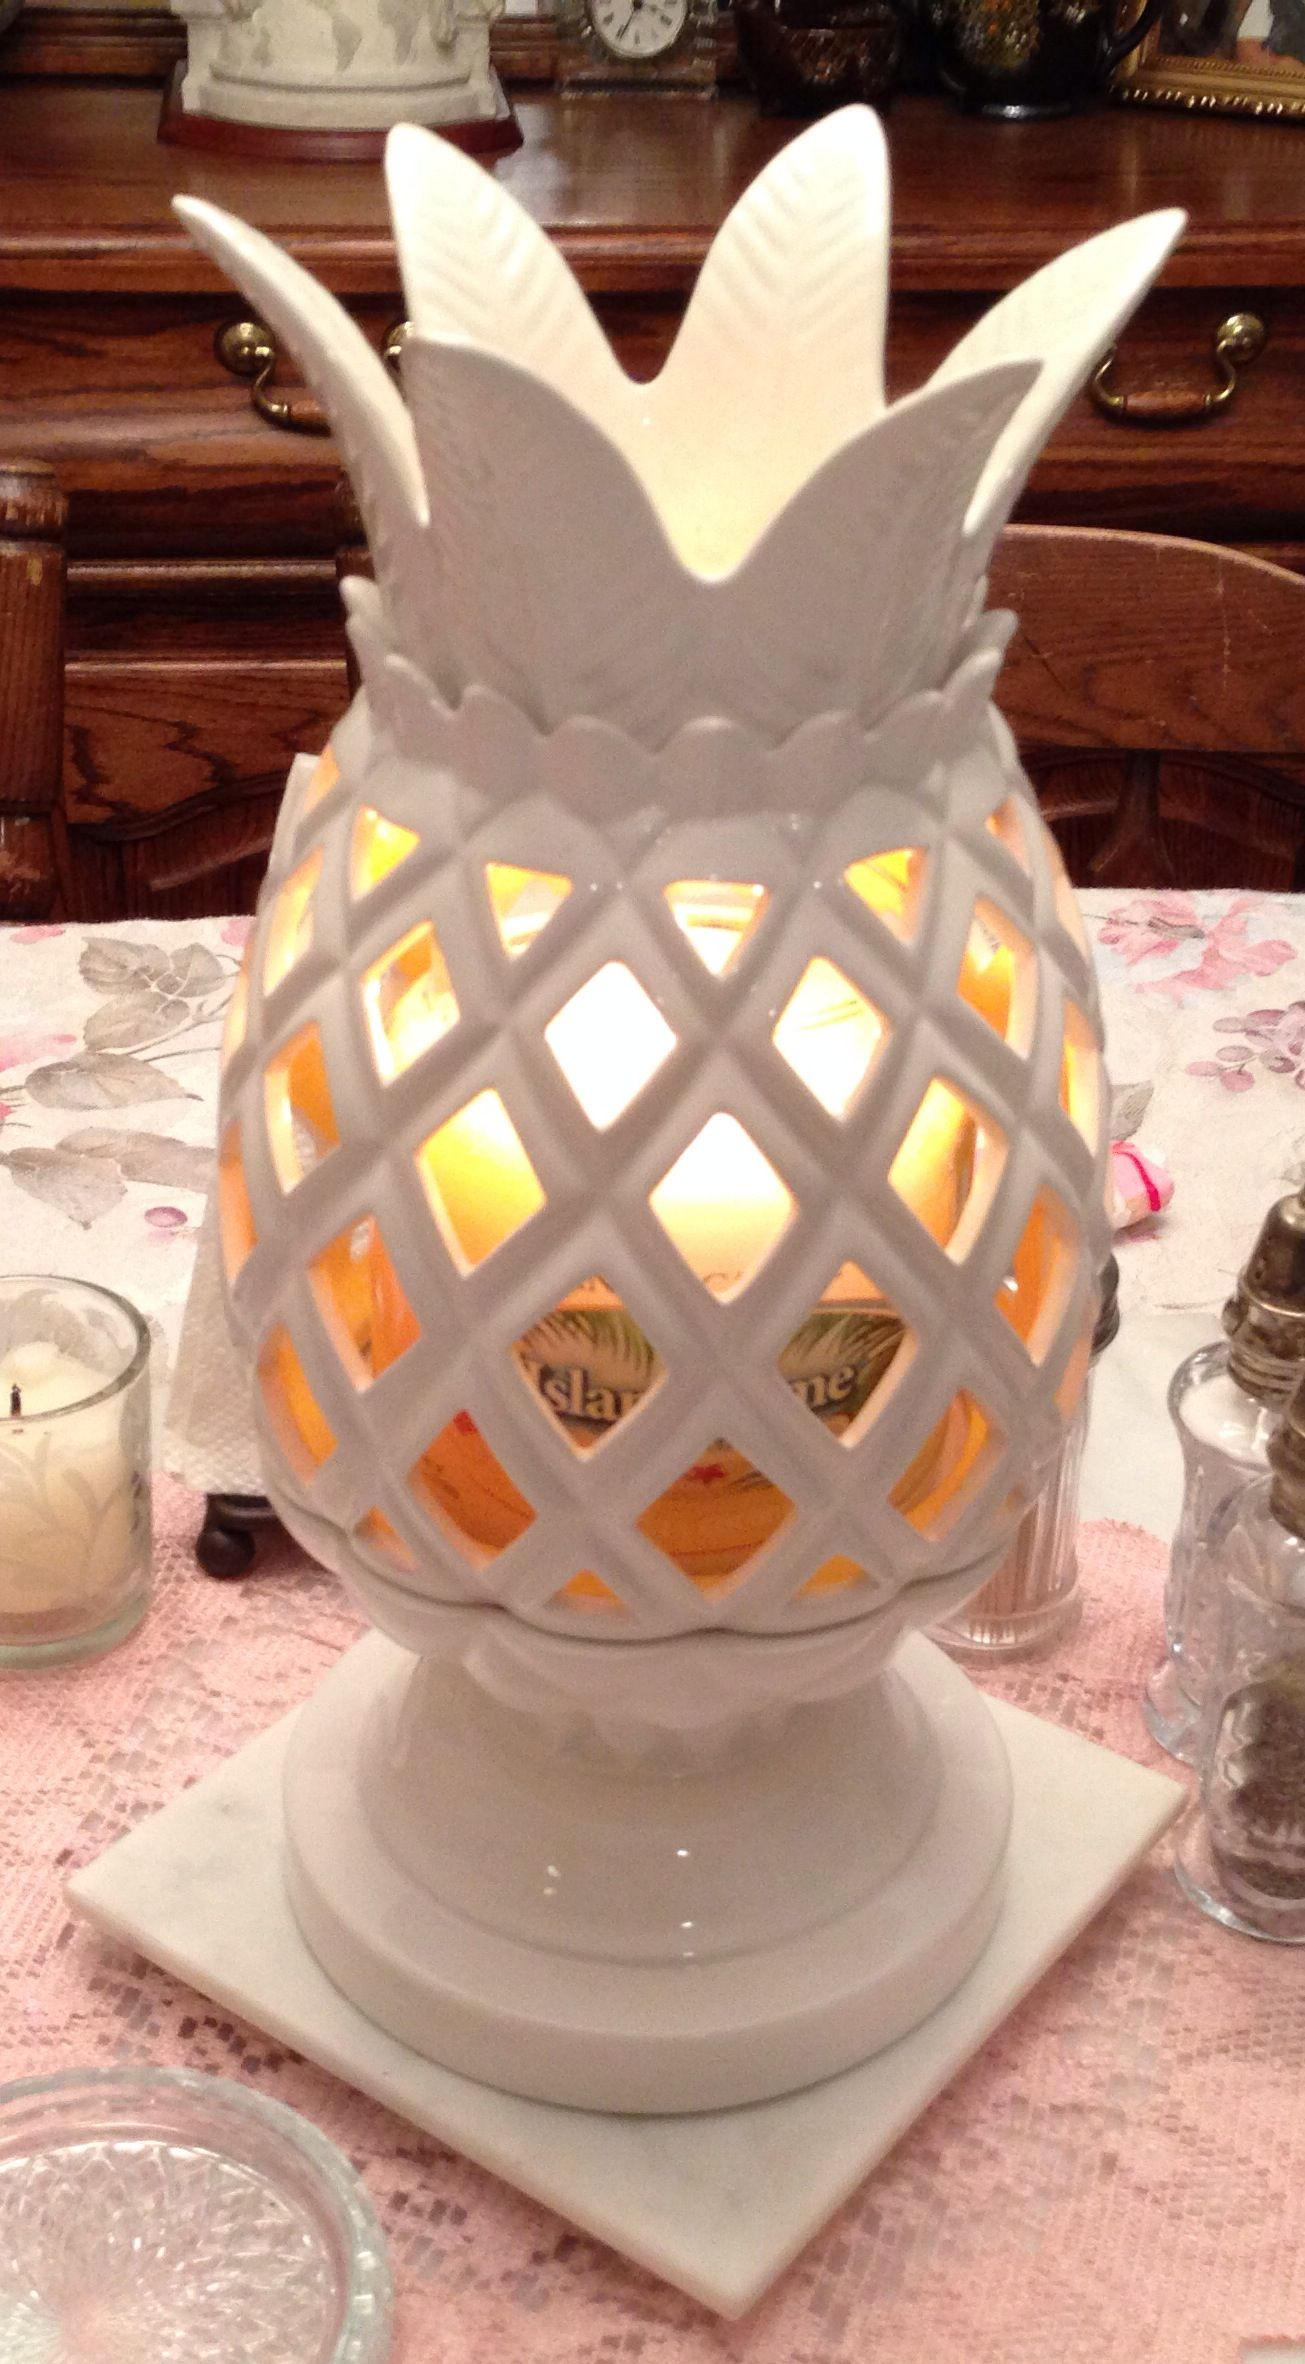 White Barn Candle Co Candle Holder From Bath Amp Body Works